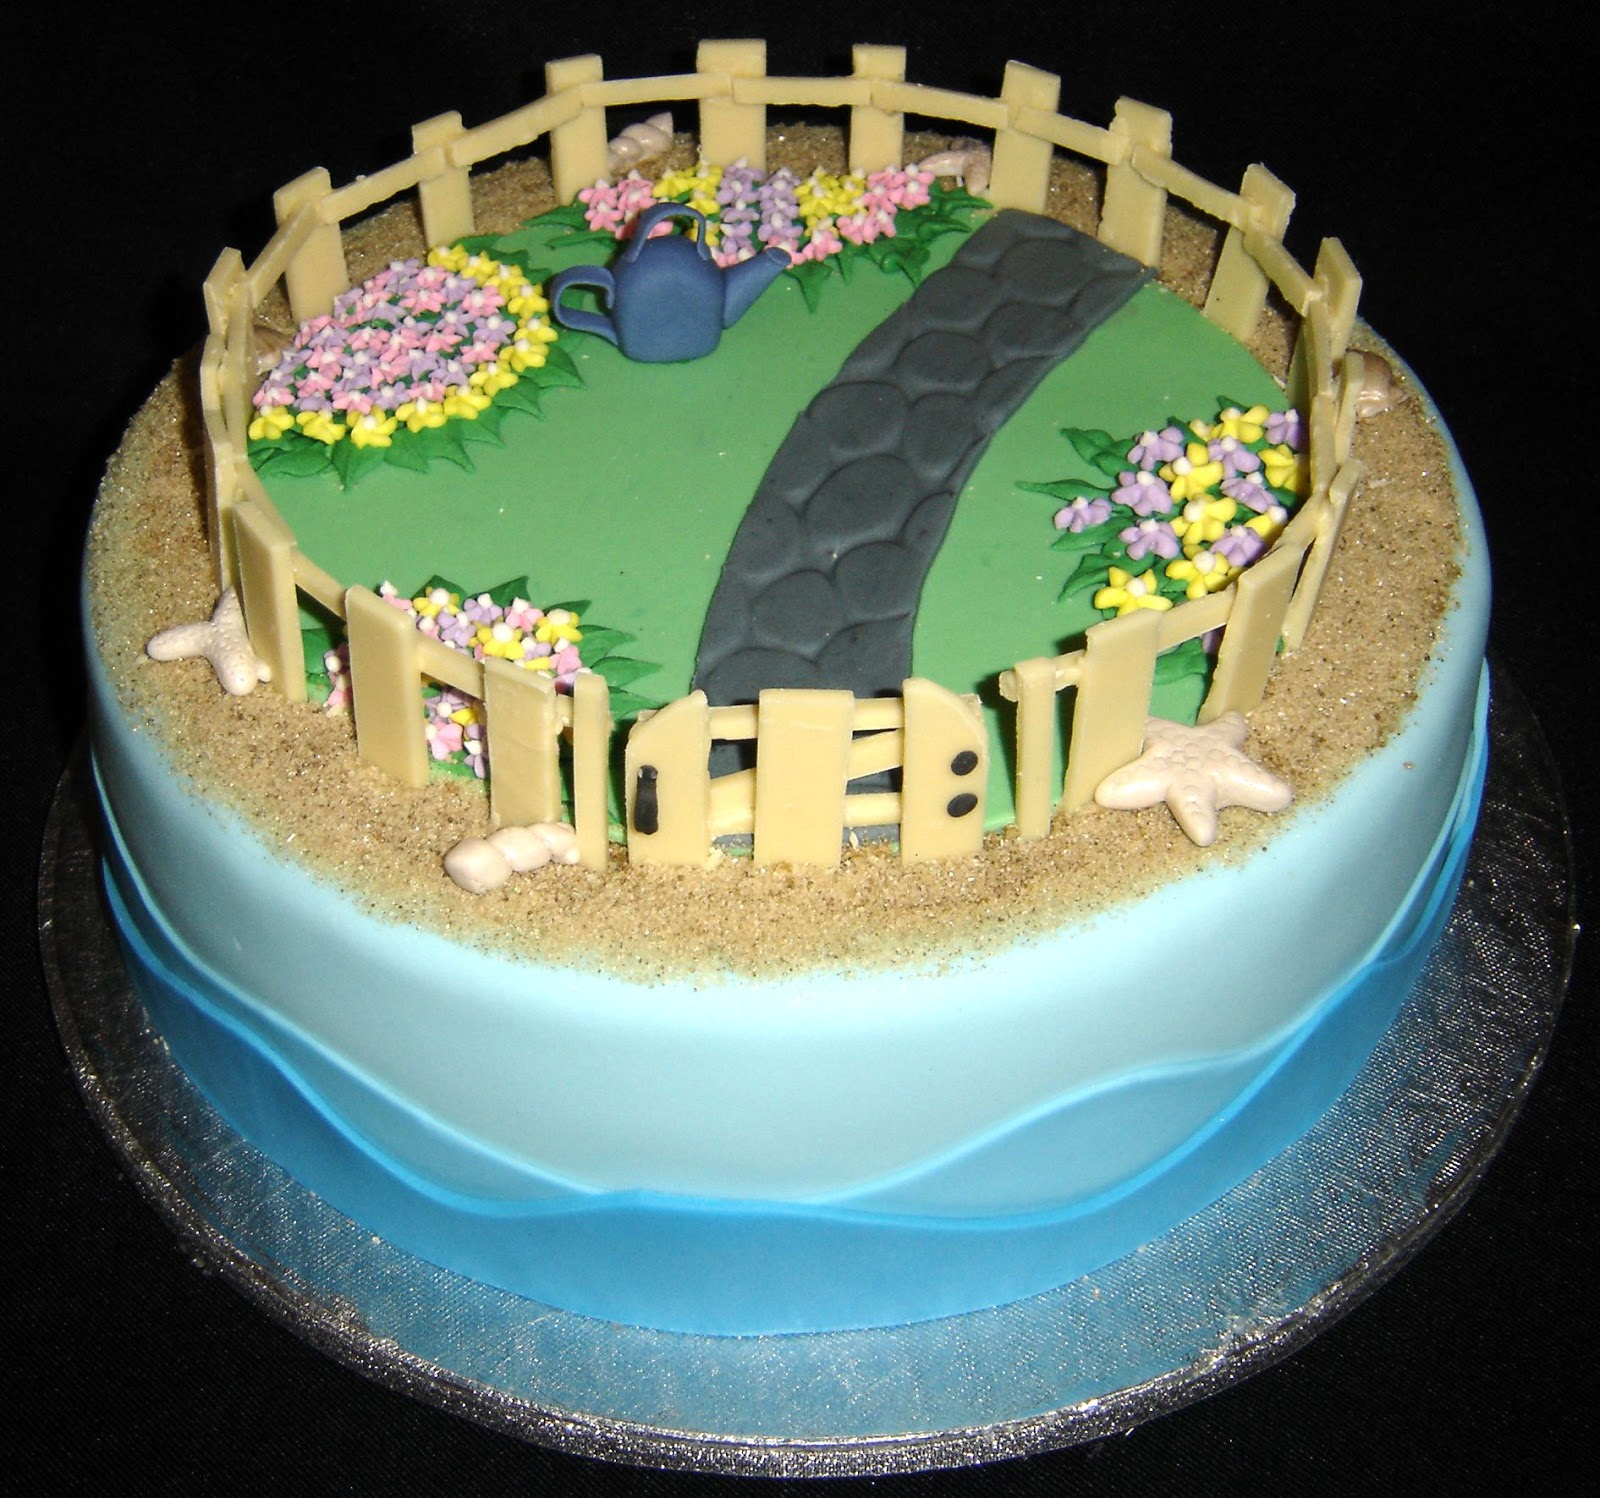 images of cakes with garden theme - photo #46